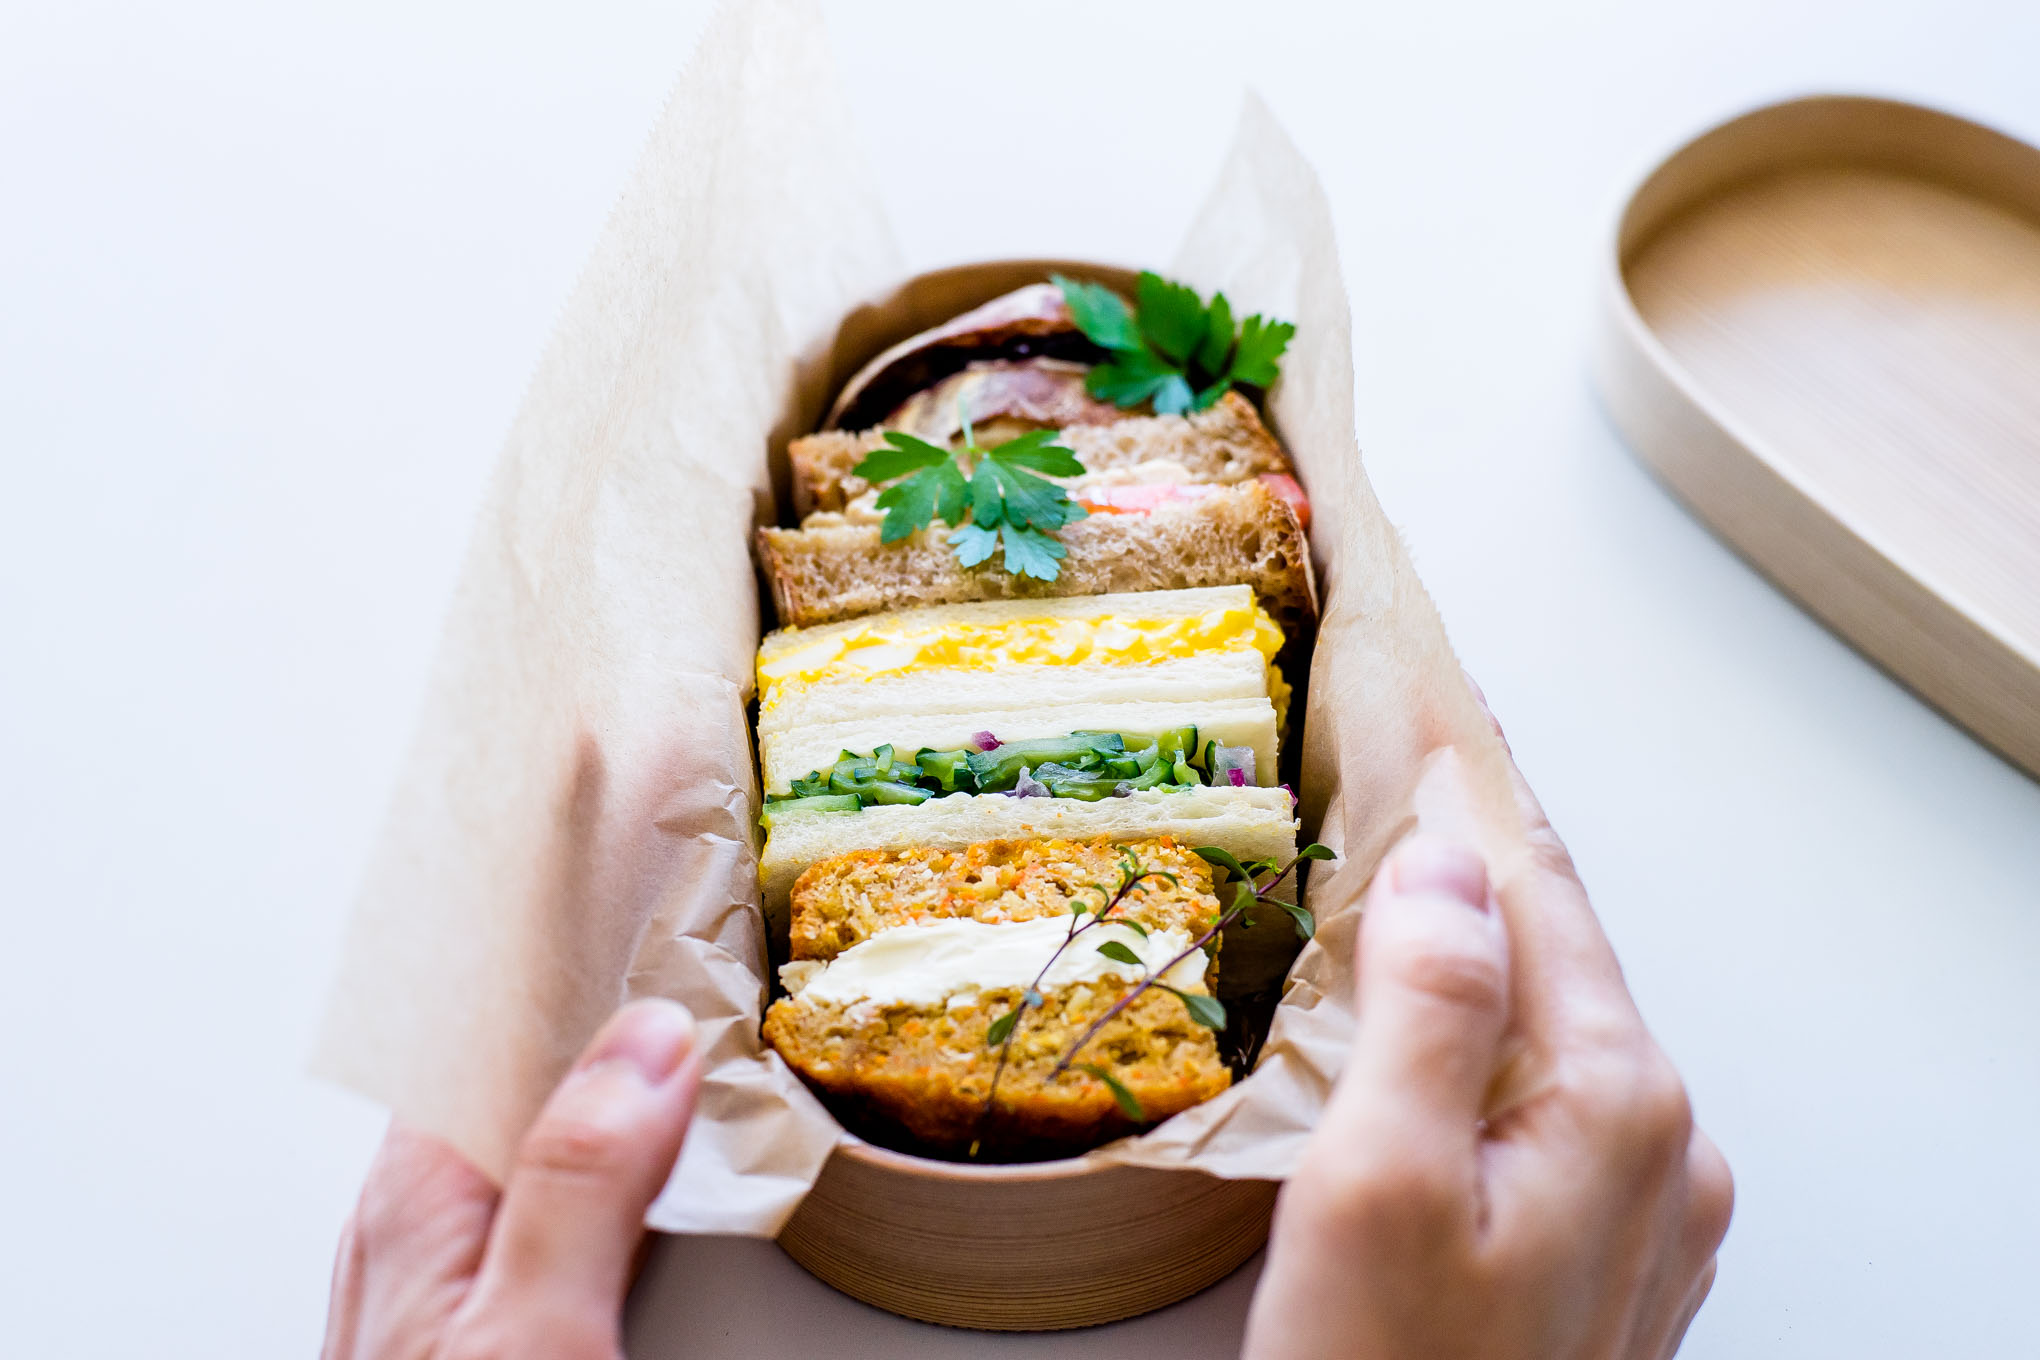 how-to-pack-a-sandwich-in-magewappa-bento-6